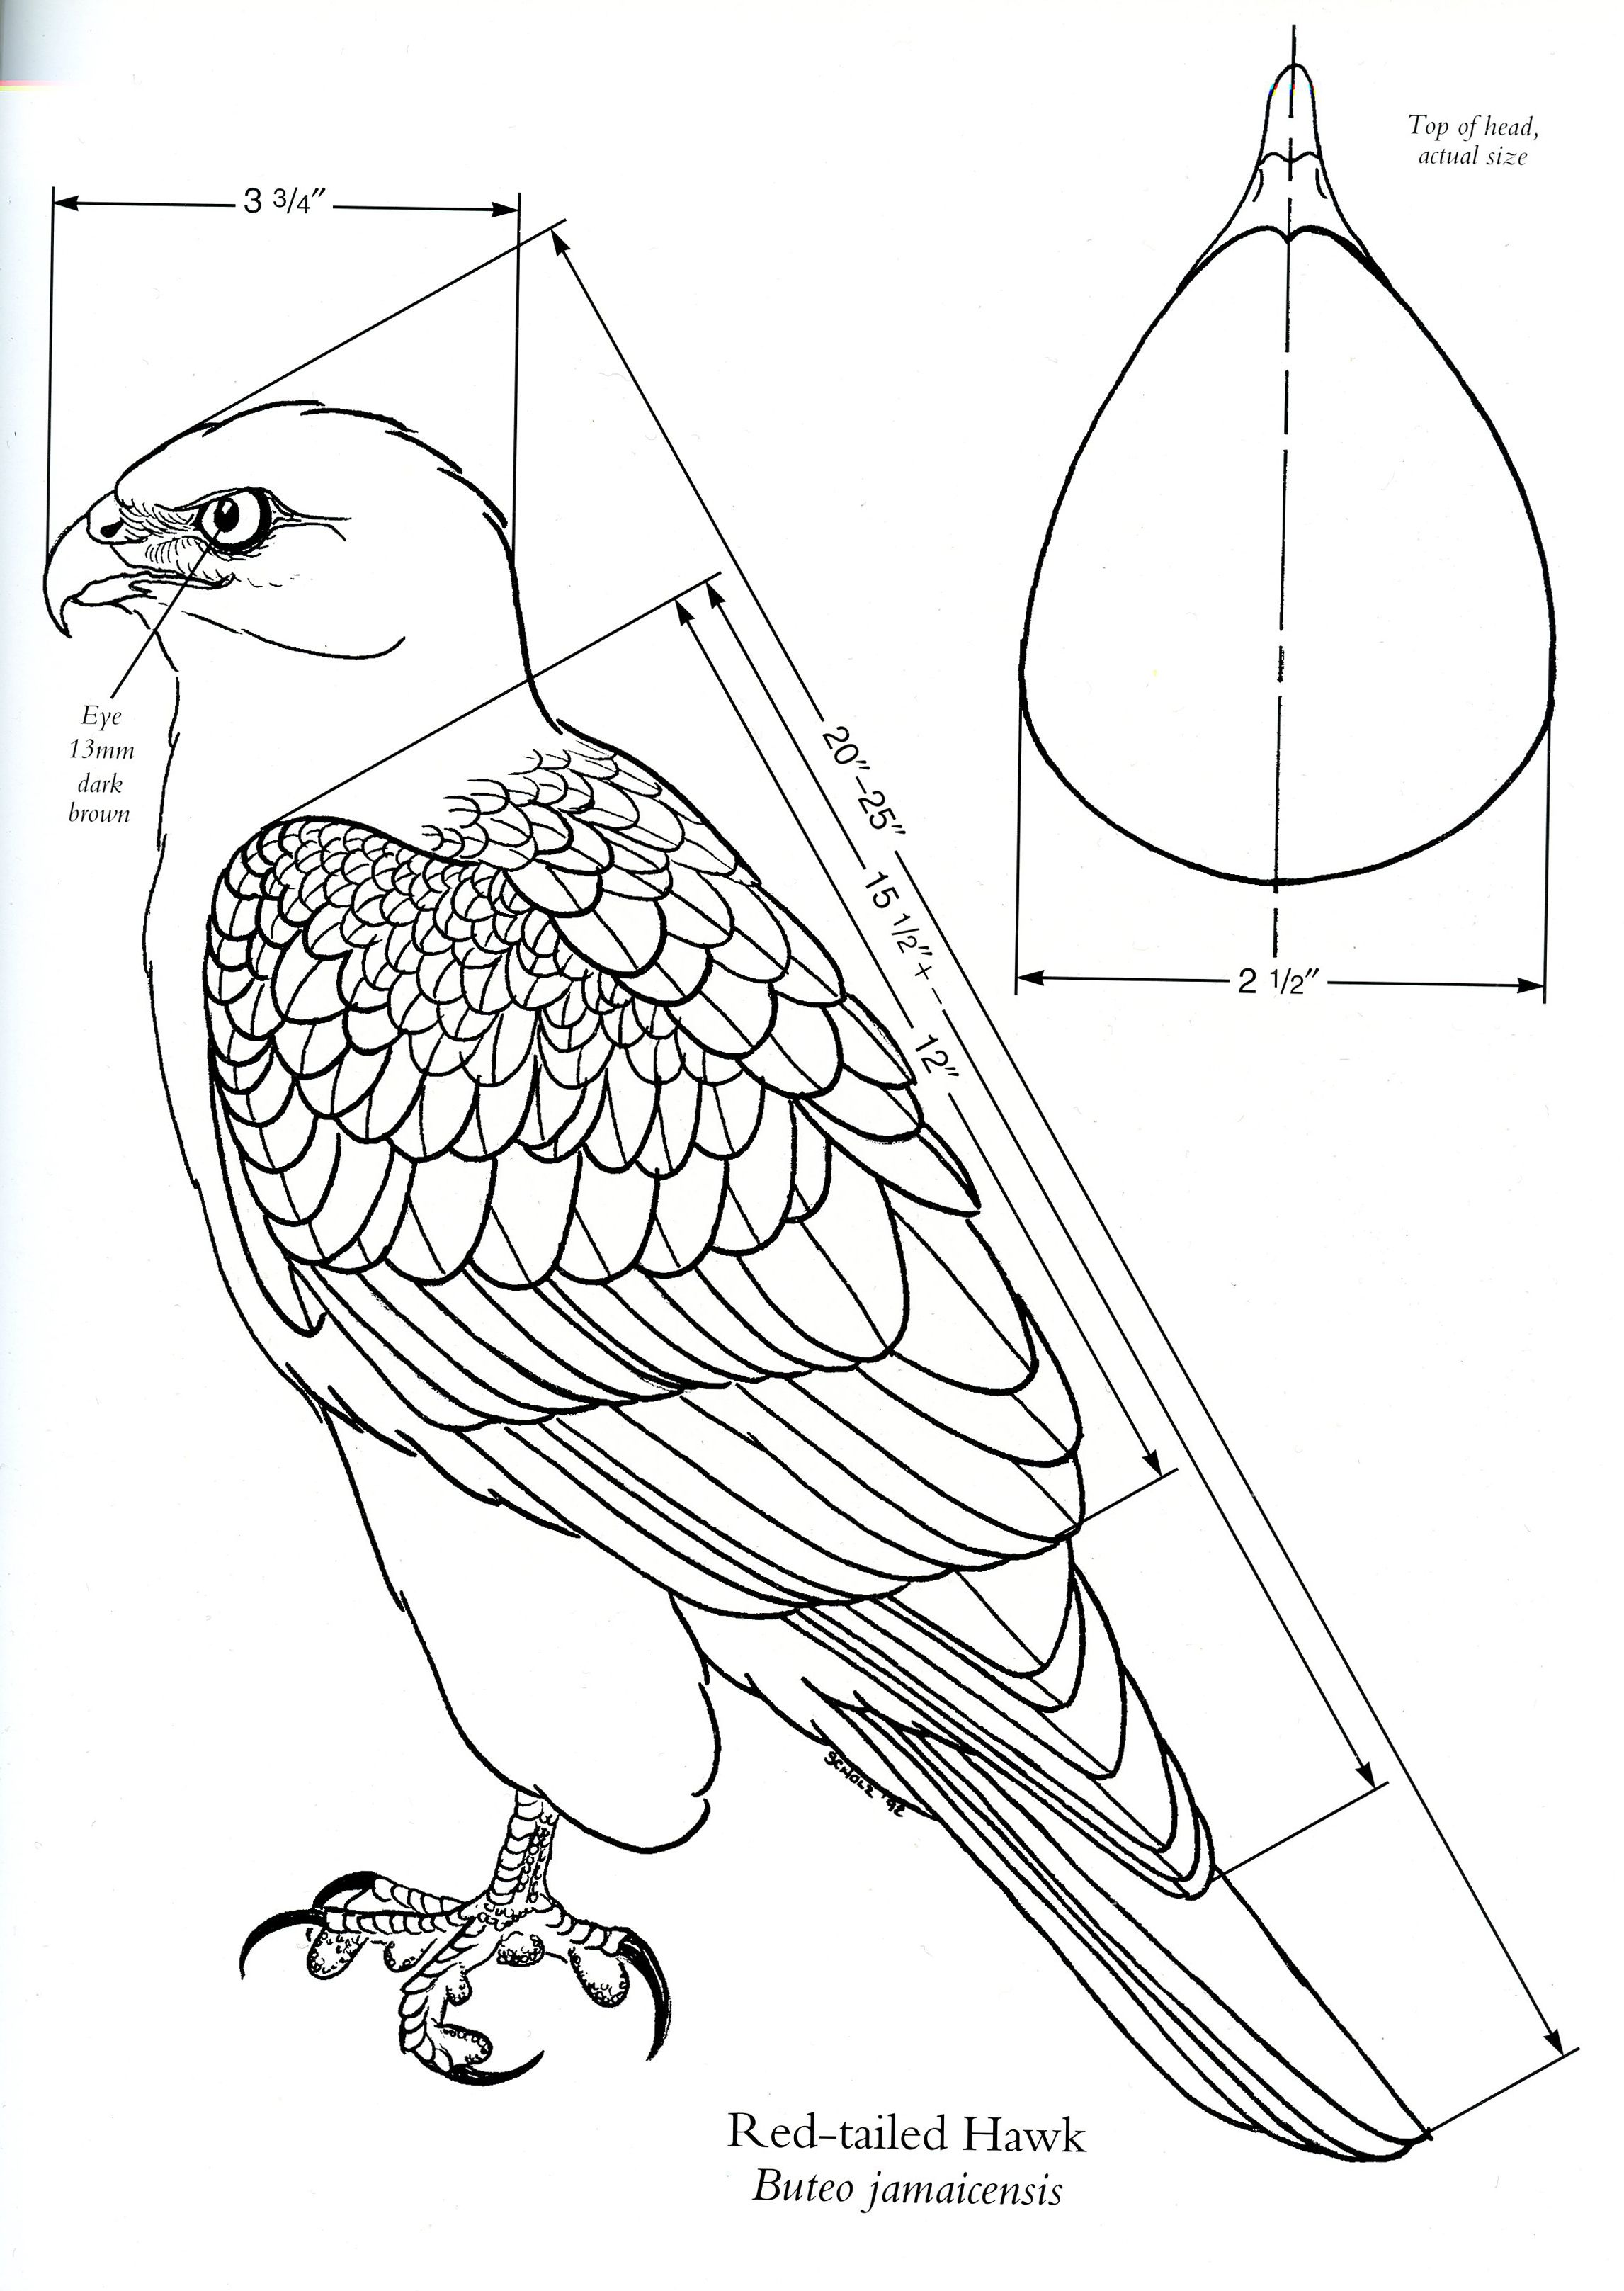 Diagram of a Red-Tailed Hawk [Source: Birds of Prey by